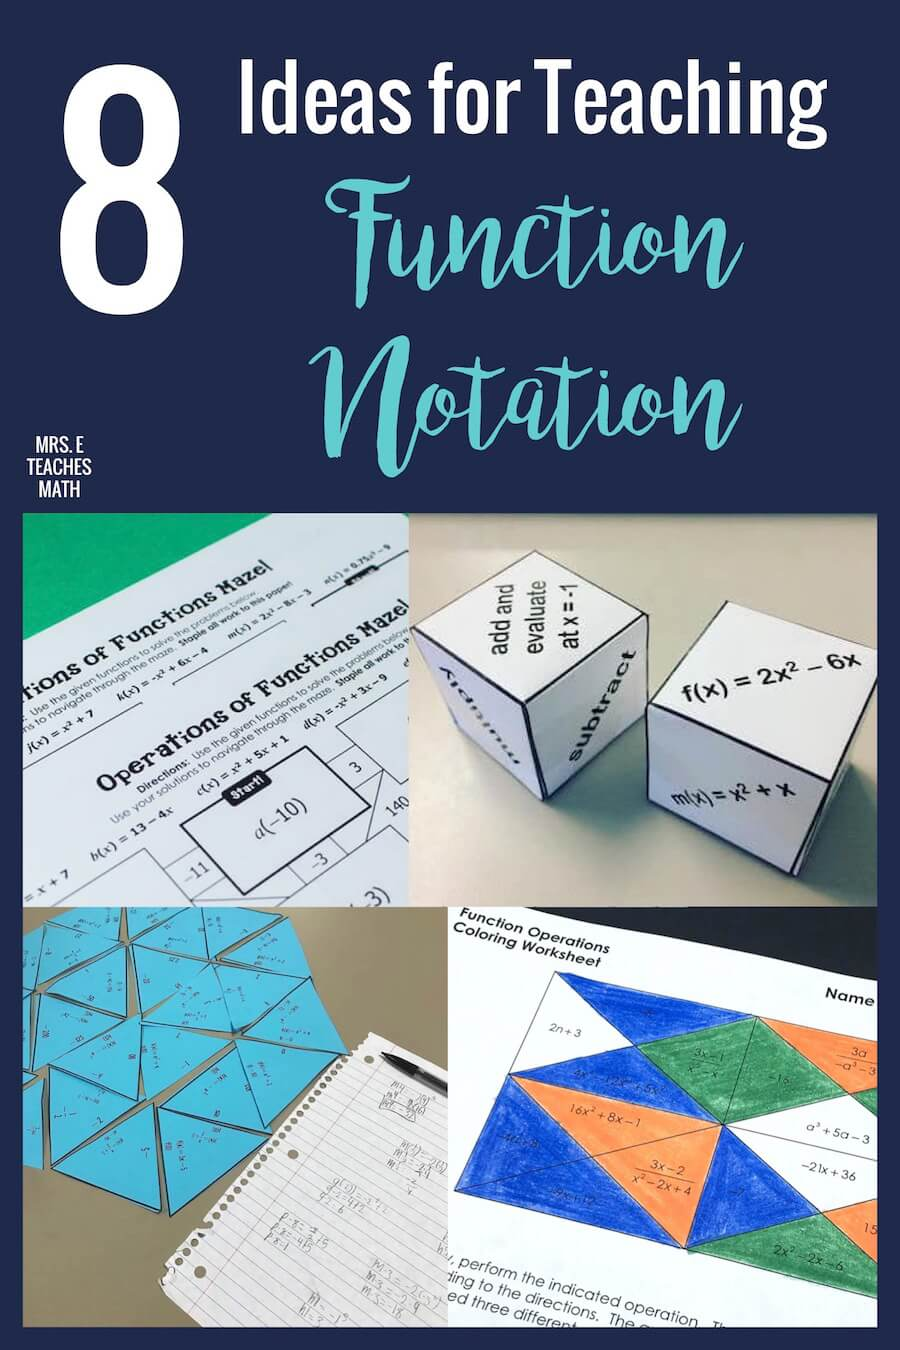 hight resolution of 8 Ideas for Teaching Function Notation   Mrs. E Teaches Math